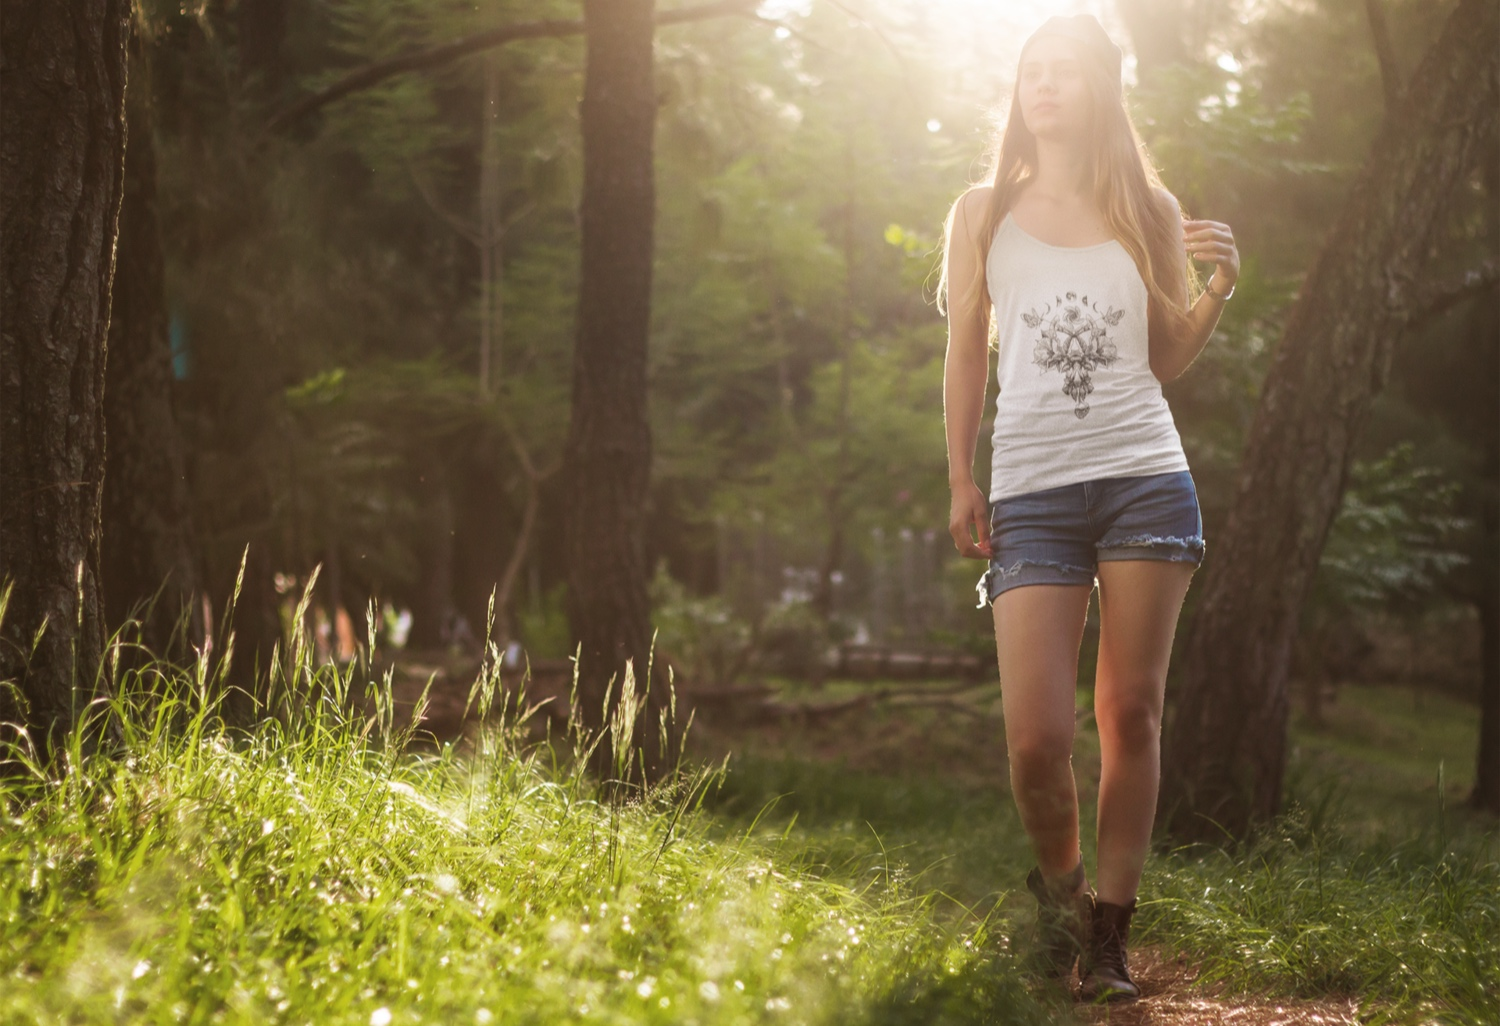 tank-top-mockup-template-of-a-girl-hiking-in-the-woods-6821a.jpg